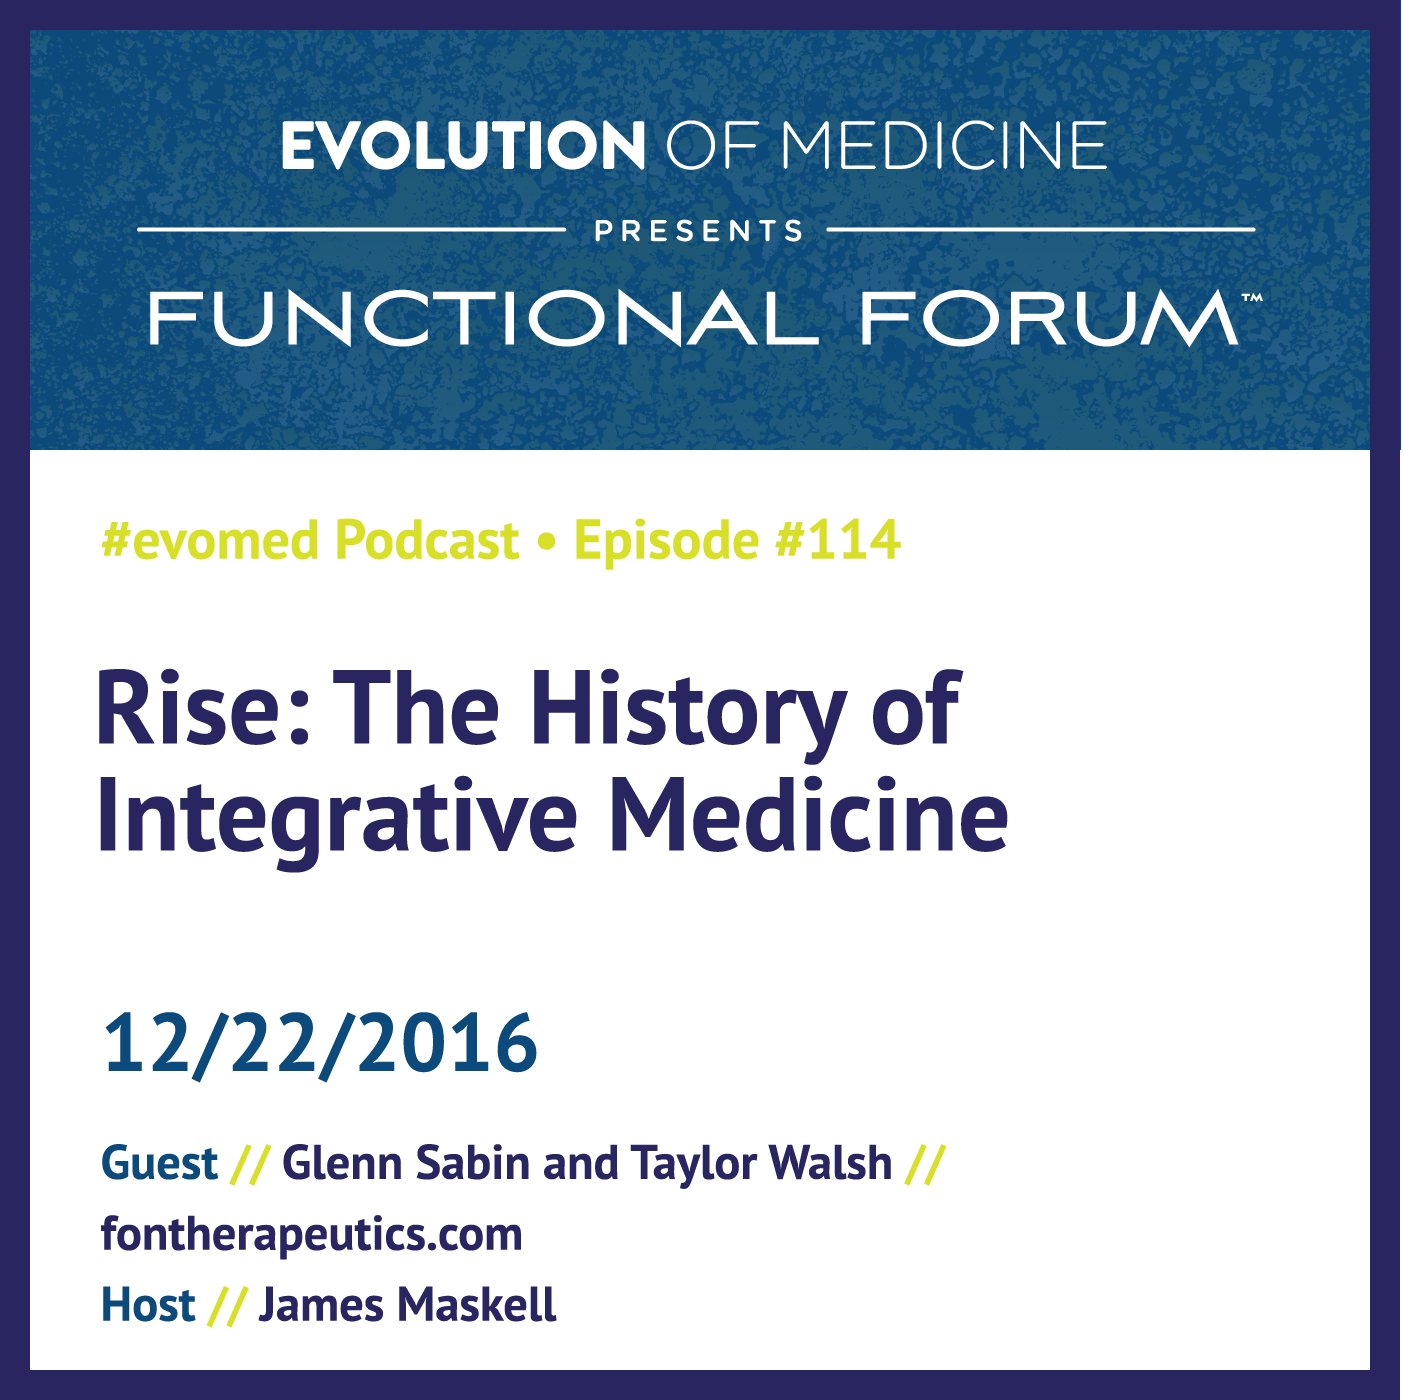 Rise: The History of Integrative Medicine